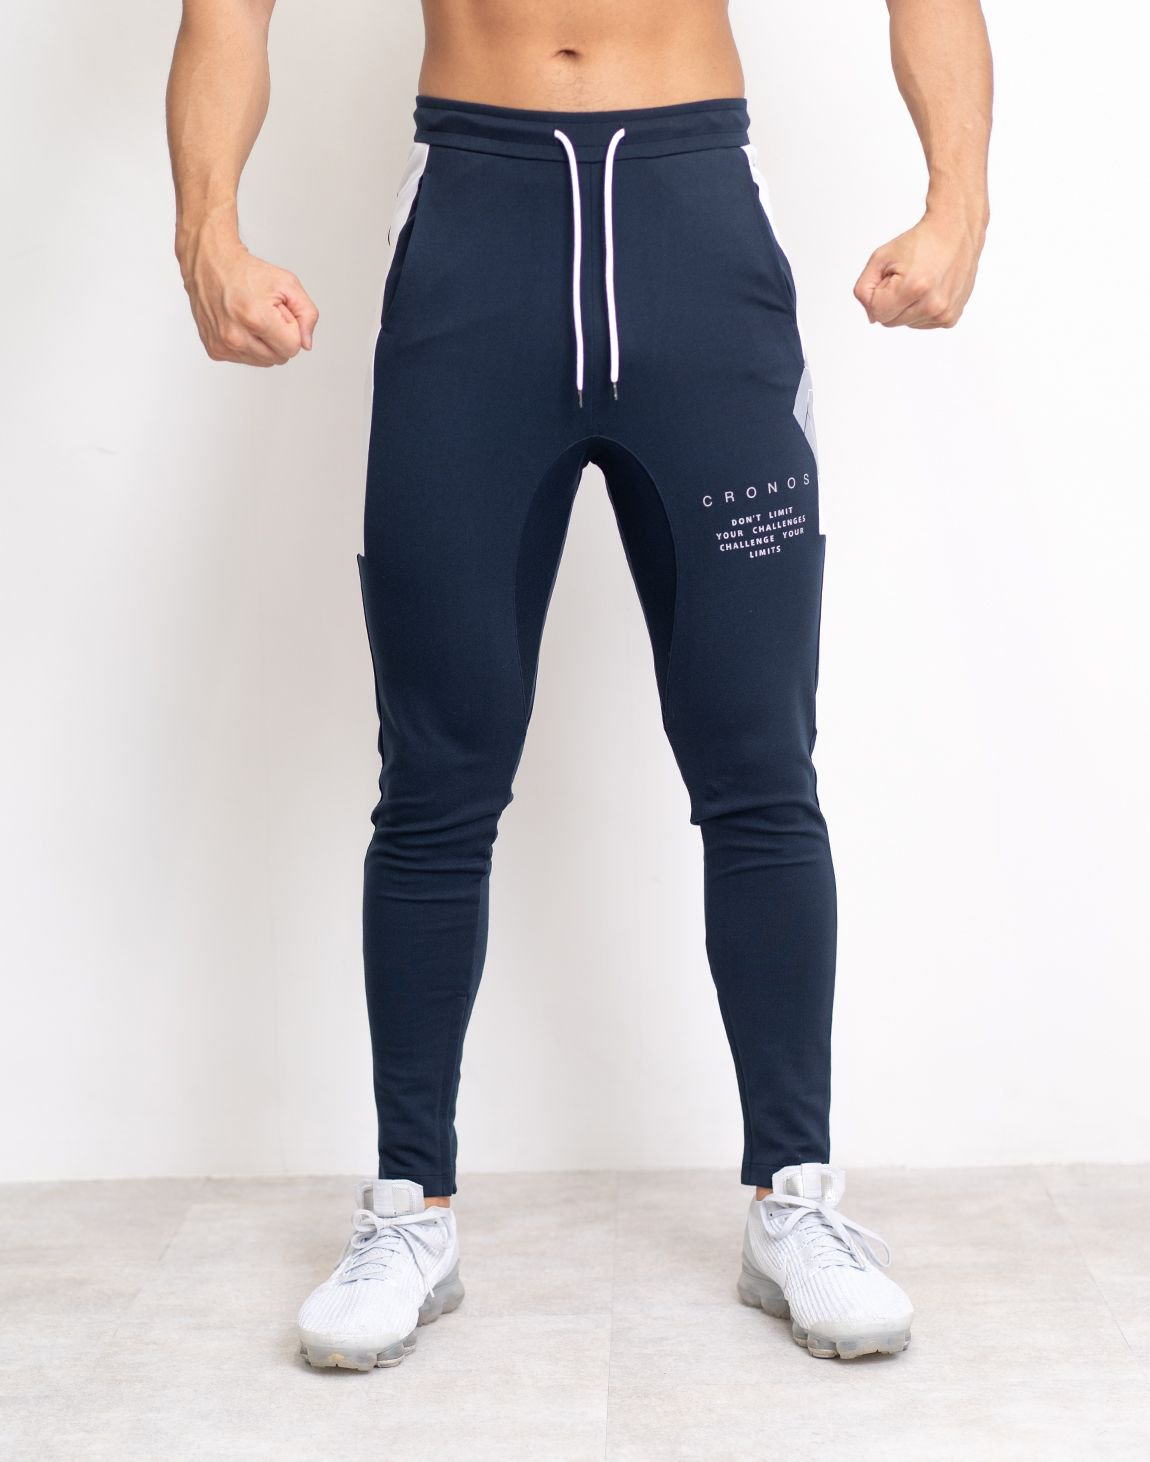 <img class='new_mark_img1' src='https://img.shop-pro.jp/img/new/icons1.gif' style='border:none;display:inline;margin:0px;padding:0px;width:auto;' />CRONOS SIDE BIG LOGO PANTS【NAVY】